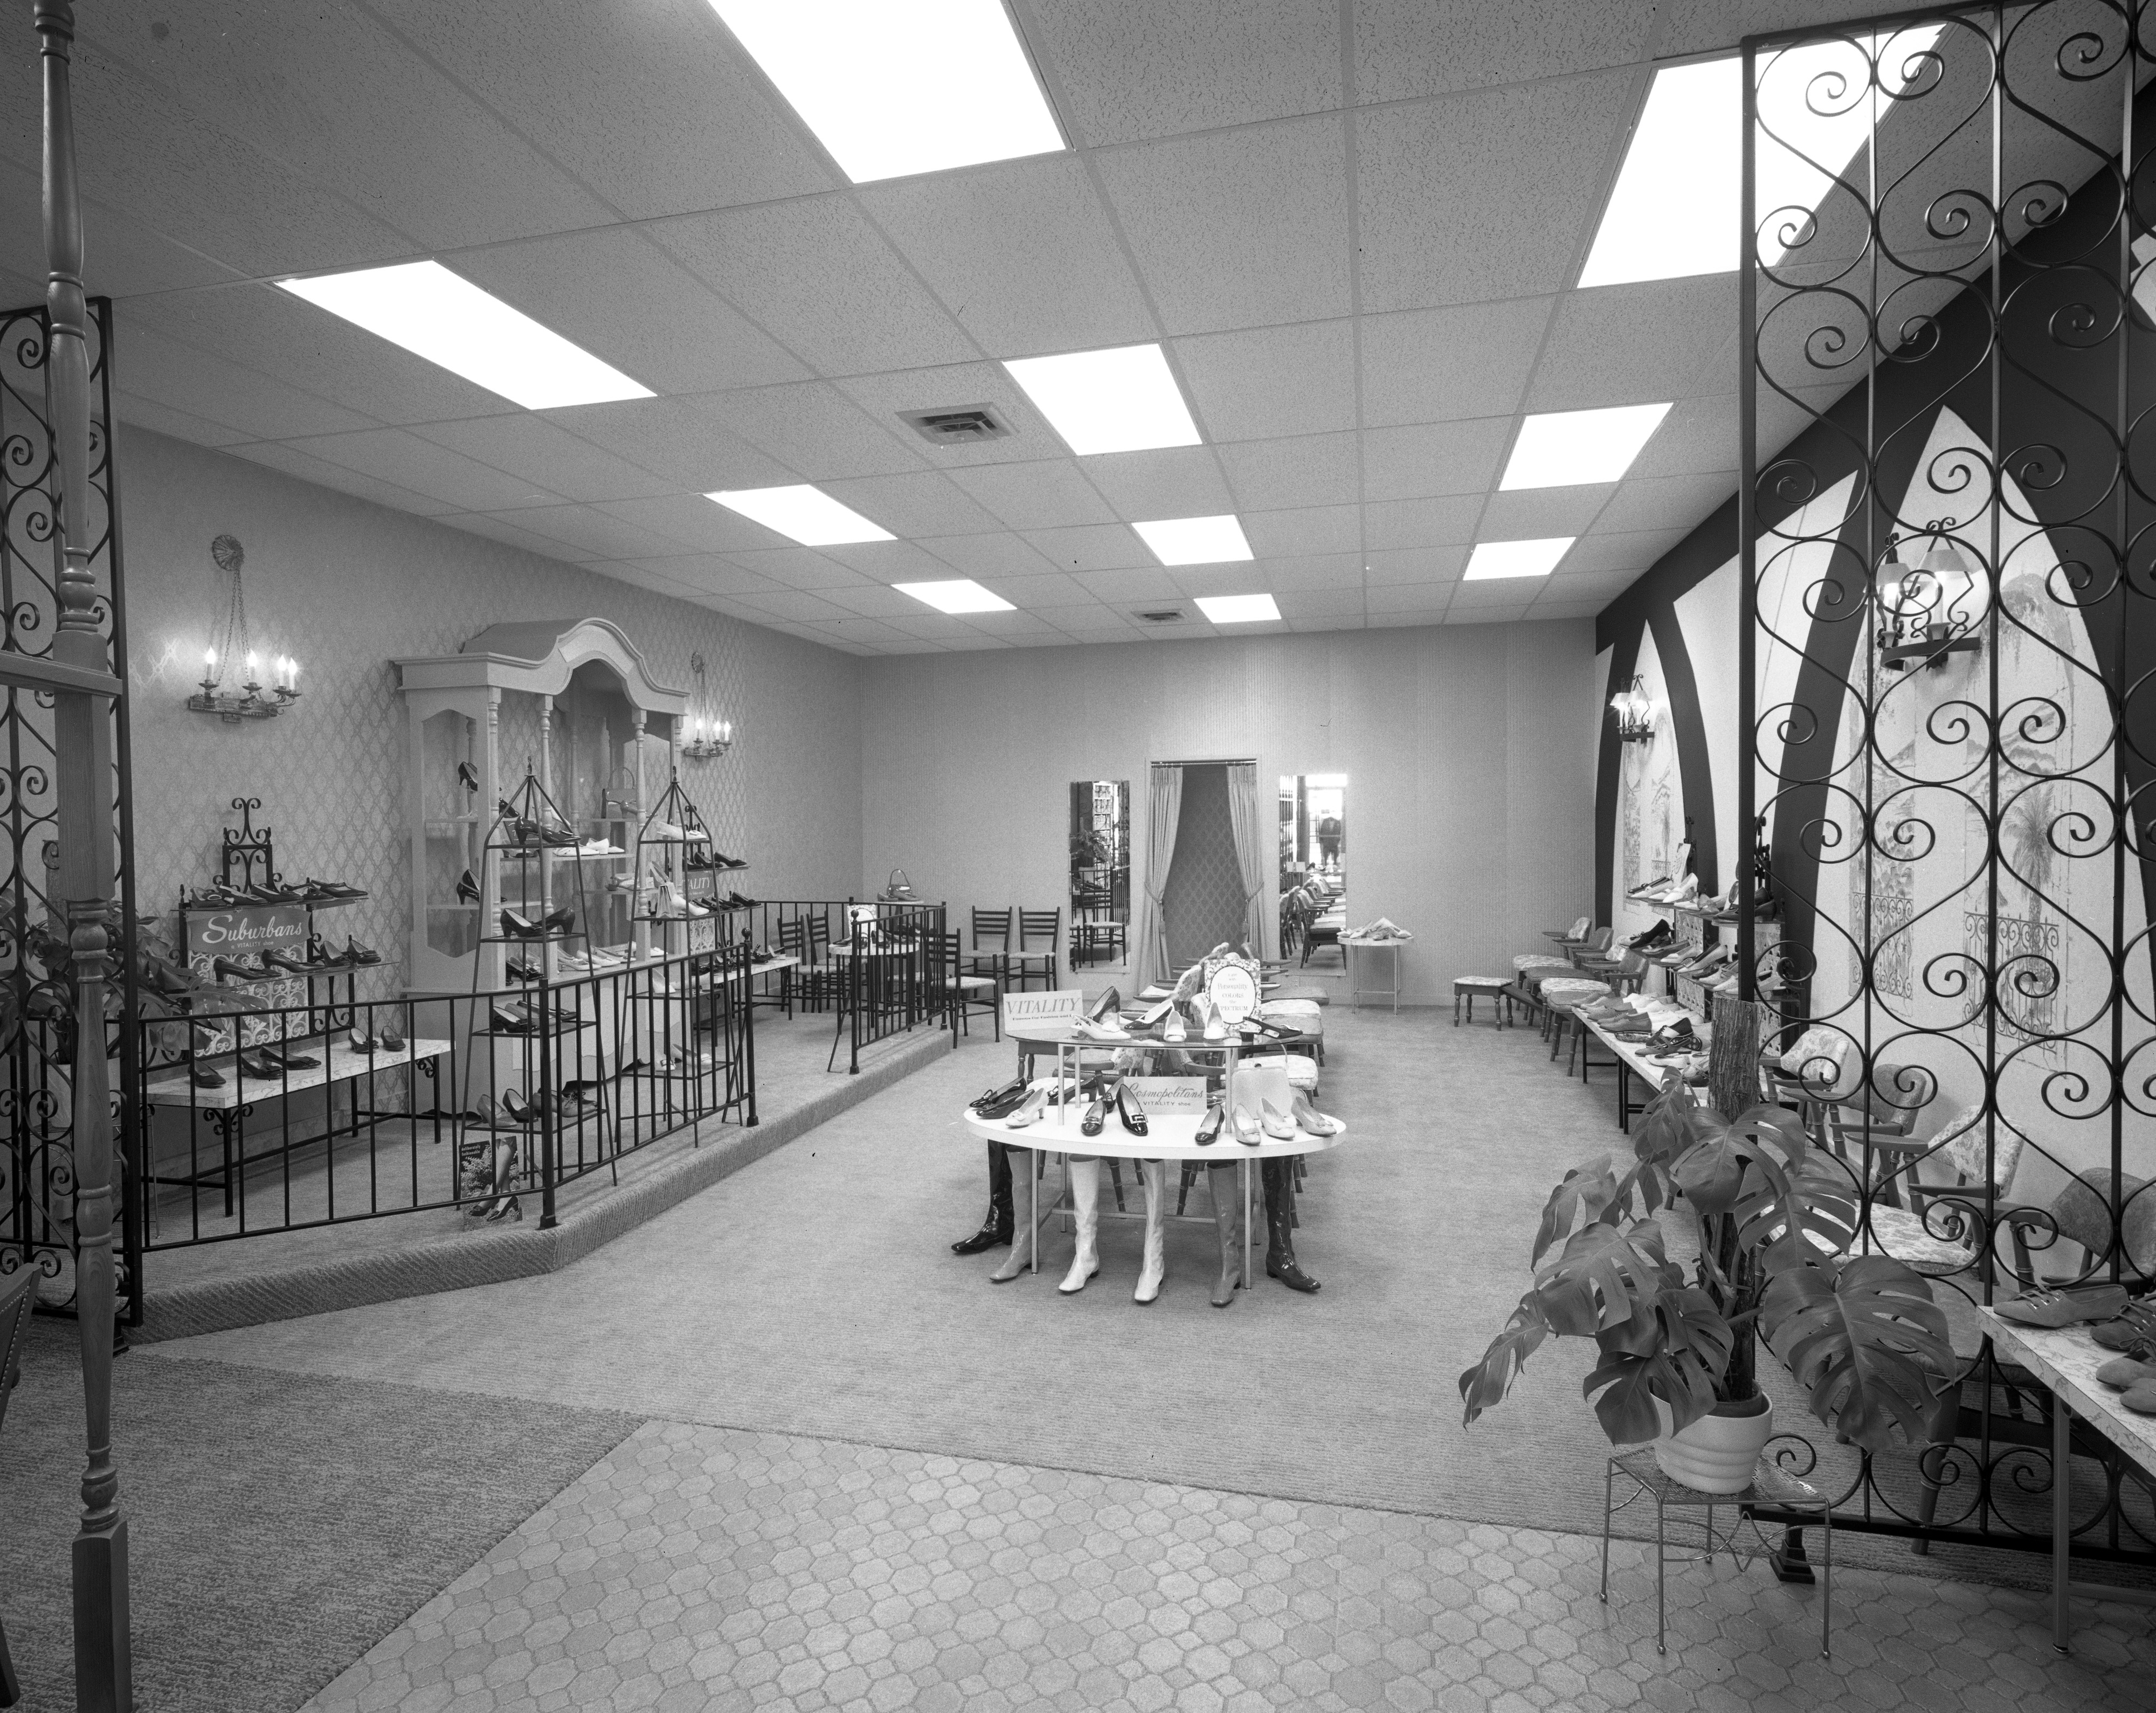 Women's Department of New Mast Shoe Store at 217 S. Main St., April 1968 image